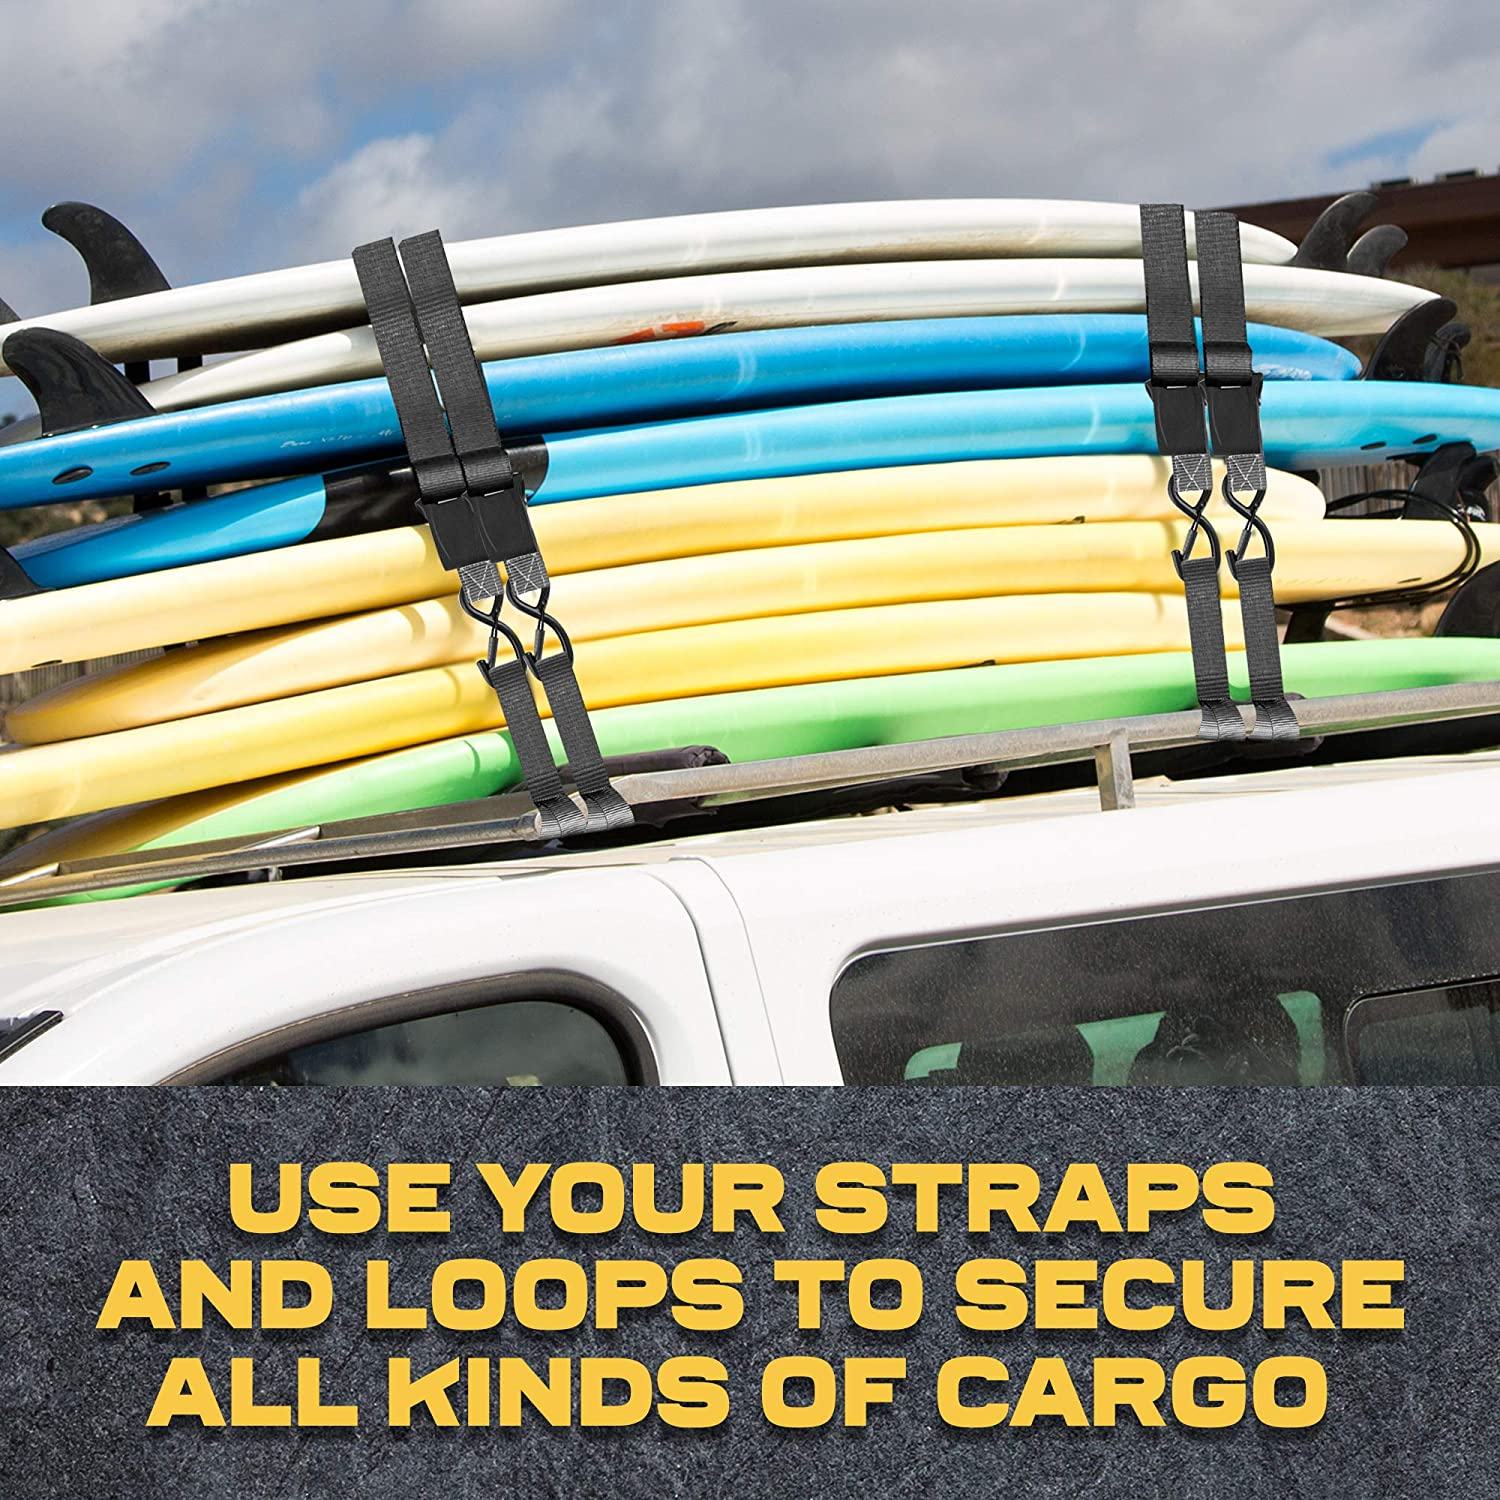 """Surfboards 1700Lb Break Strength for Furniture 4 Etc. Pack of TVs Soft Loop Tie Downs 1/"""" by 15/' Ratchet Straps w//S-Hook Safety Latches /& AUGO Extra Strong Ratchet Straps /& Soft Loops 4"""